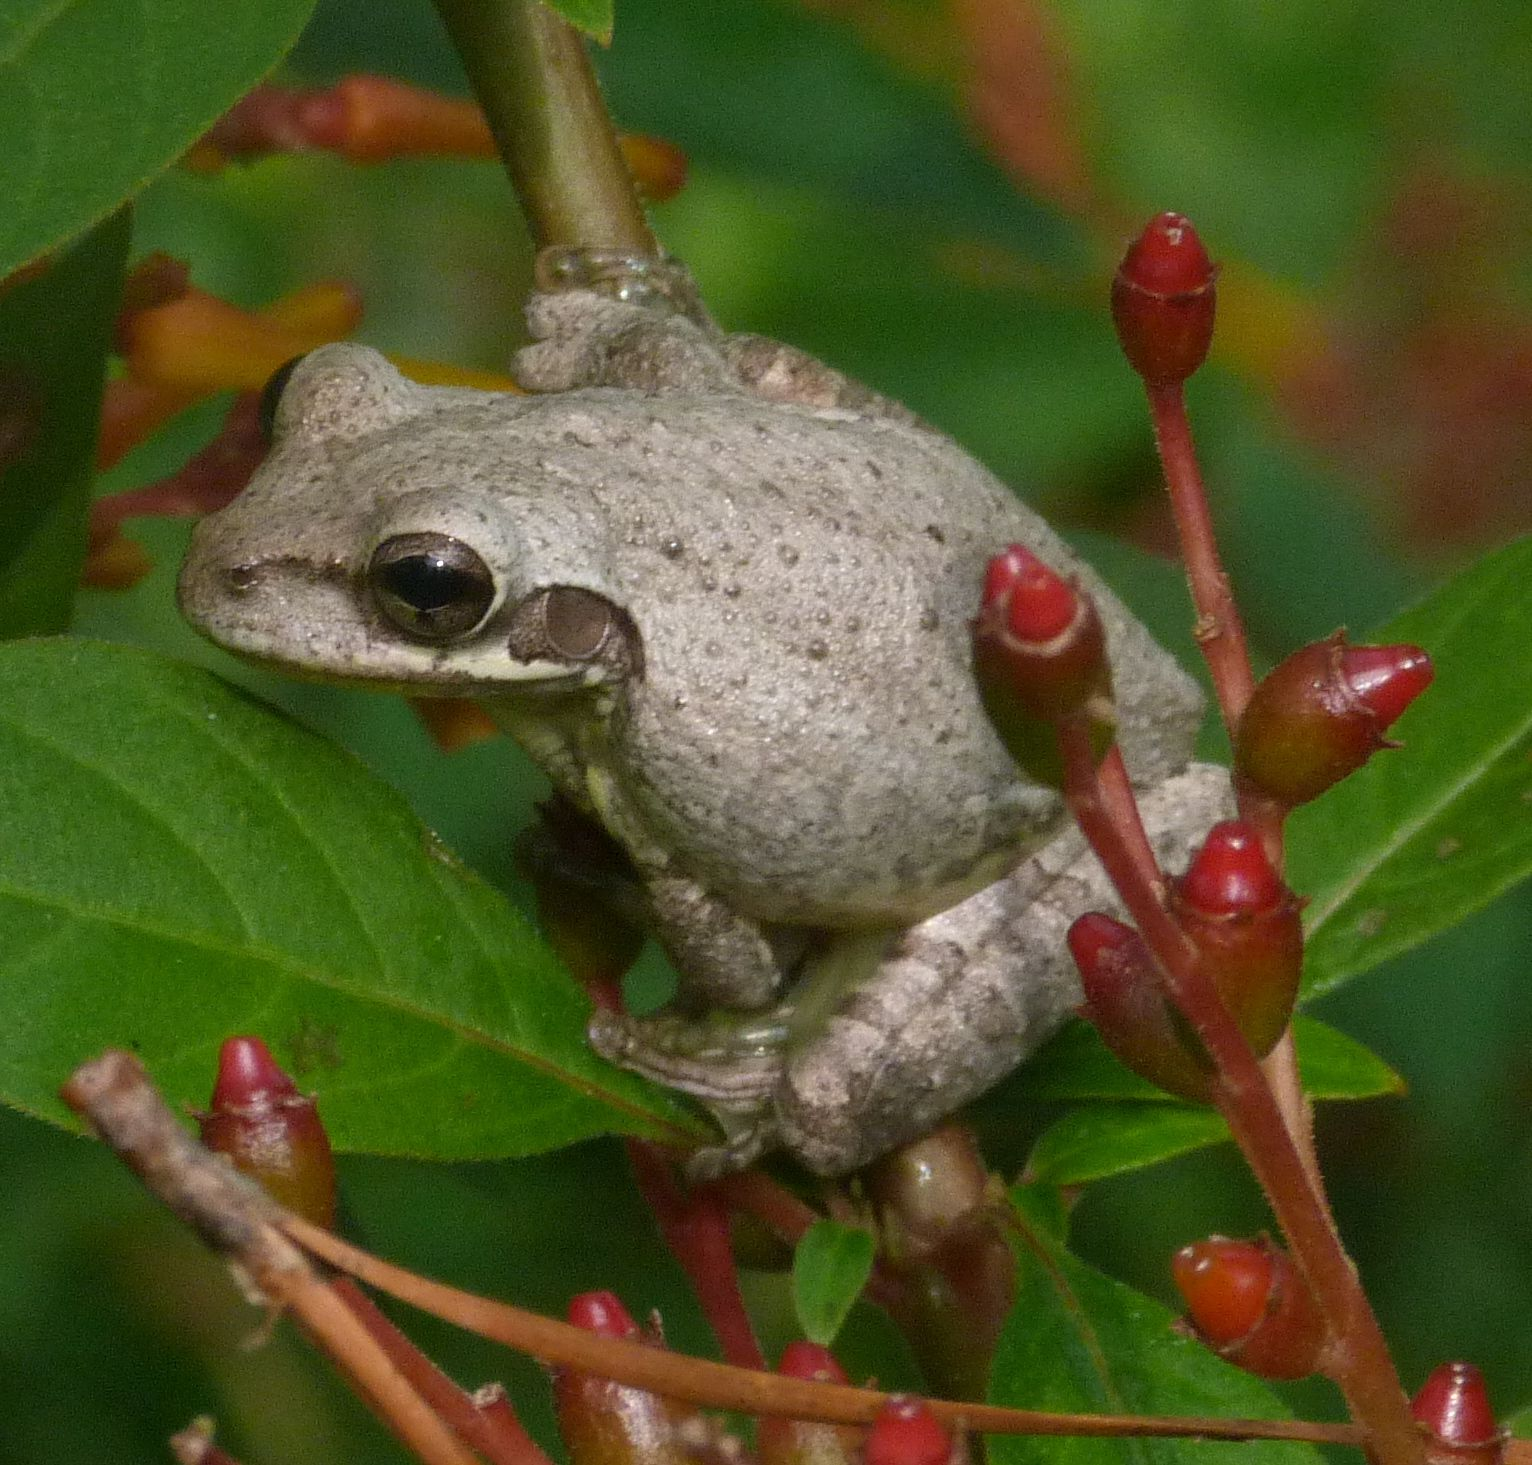 This Is The Cuban Tree Frog It Is An Invasive Species In